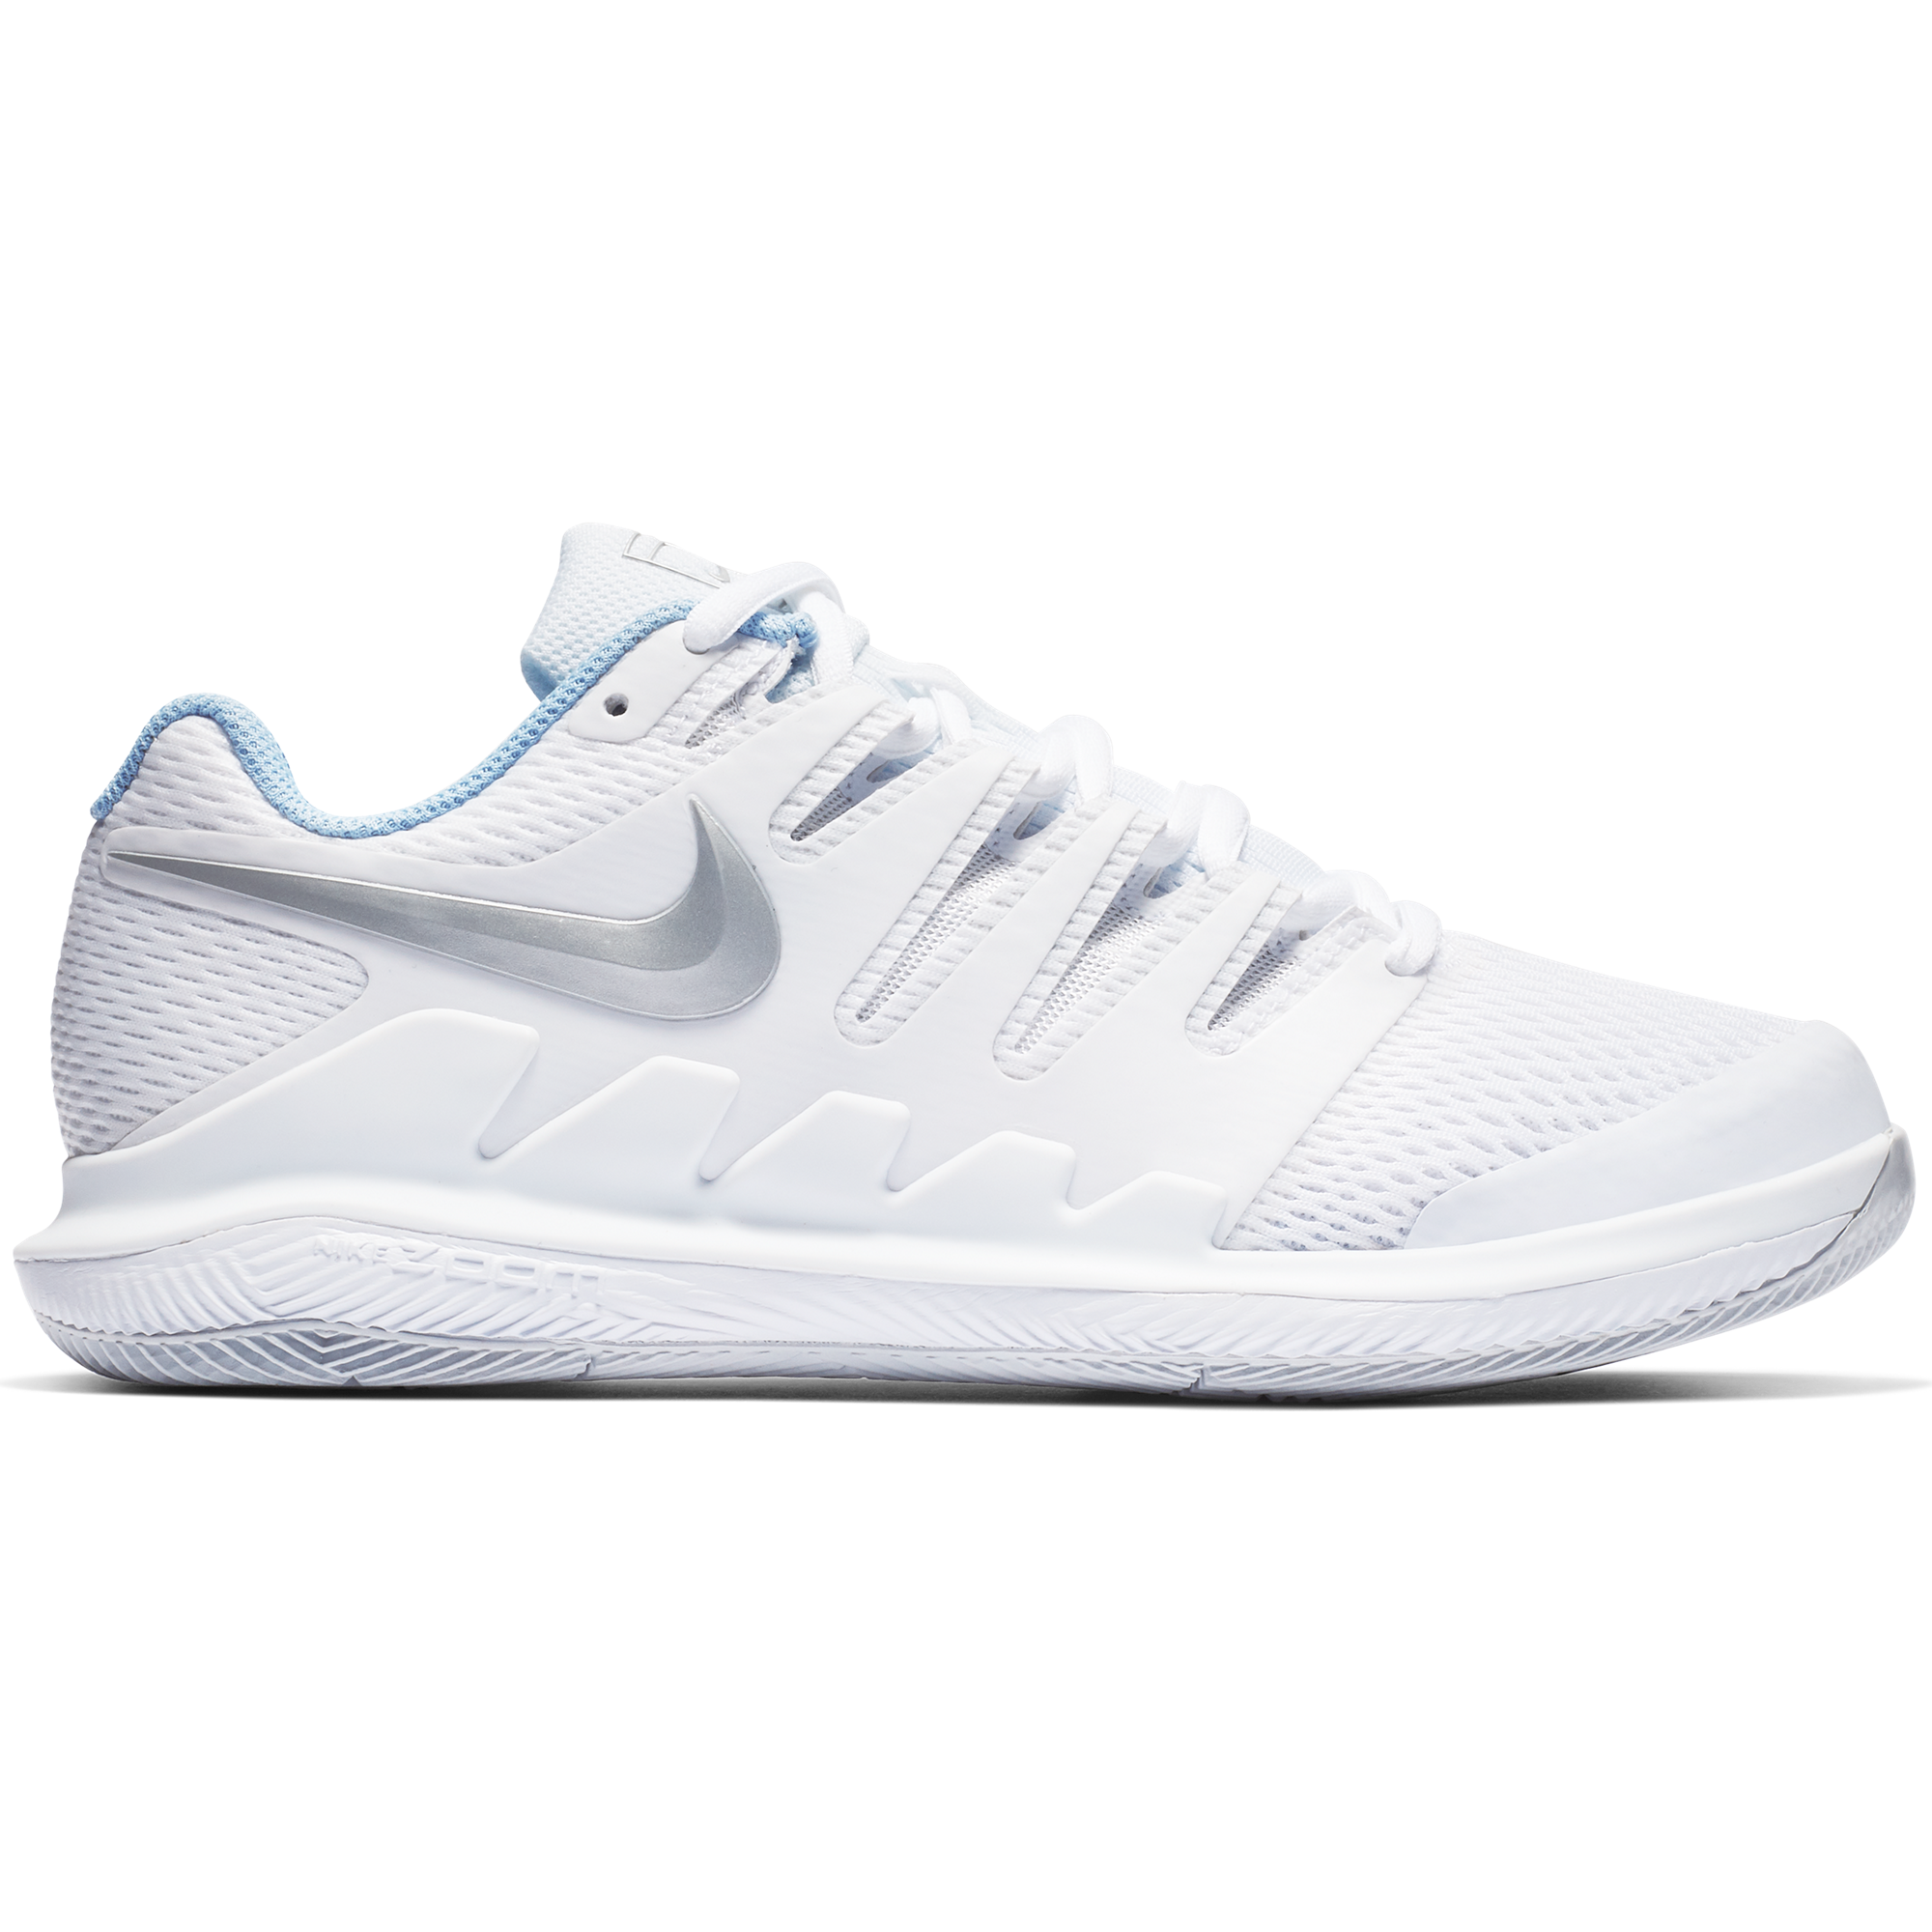 Nike Air Zoom Vapor X Womens Tennis Shoe Womens Tennis Shoes Tennis Shoes Womens Tennis